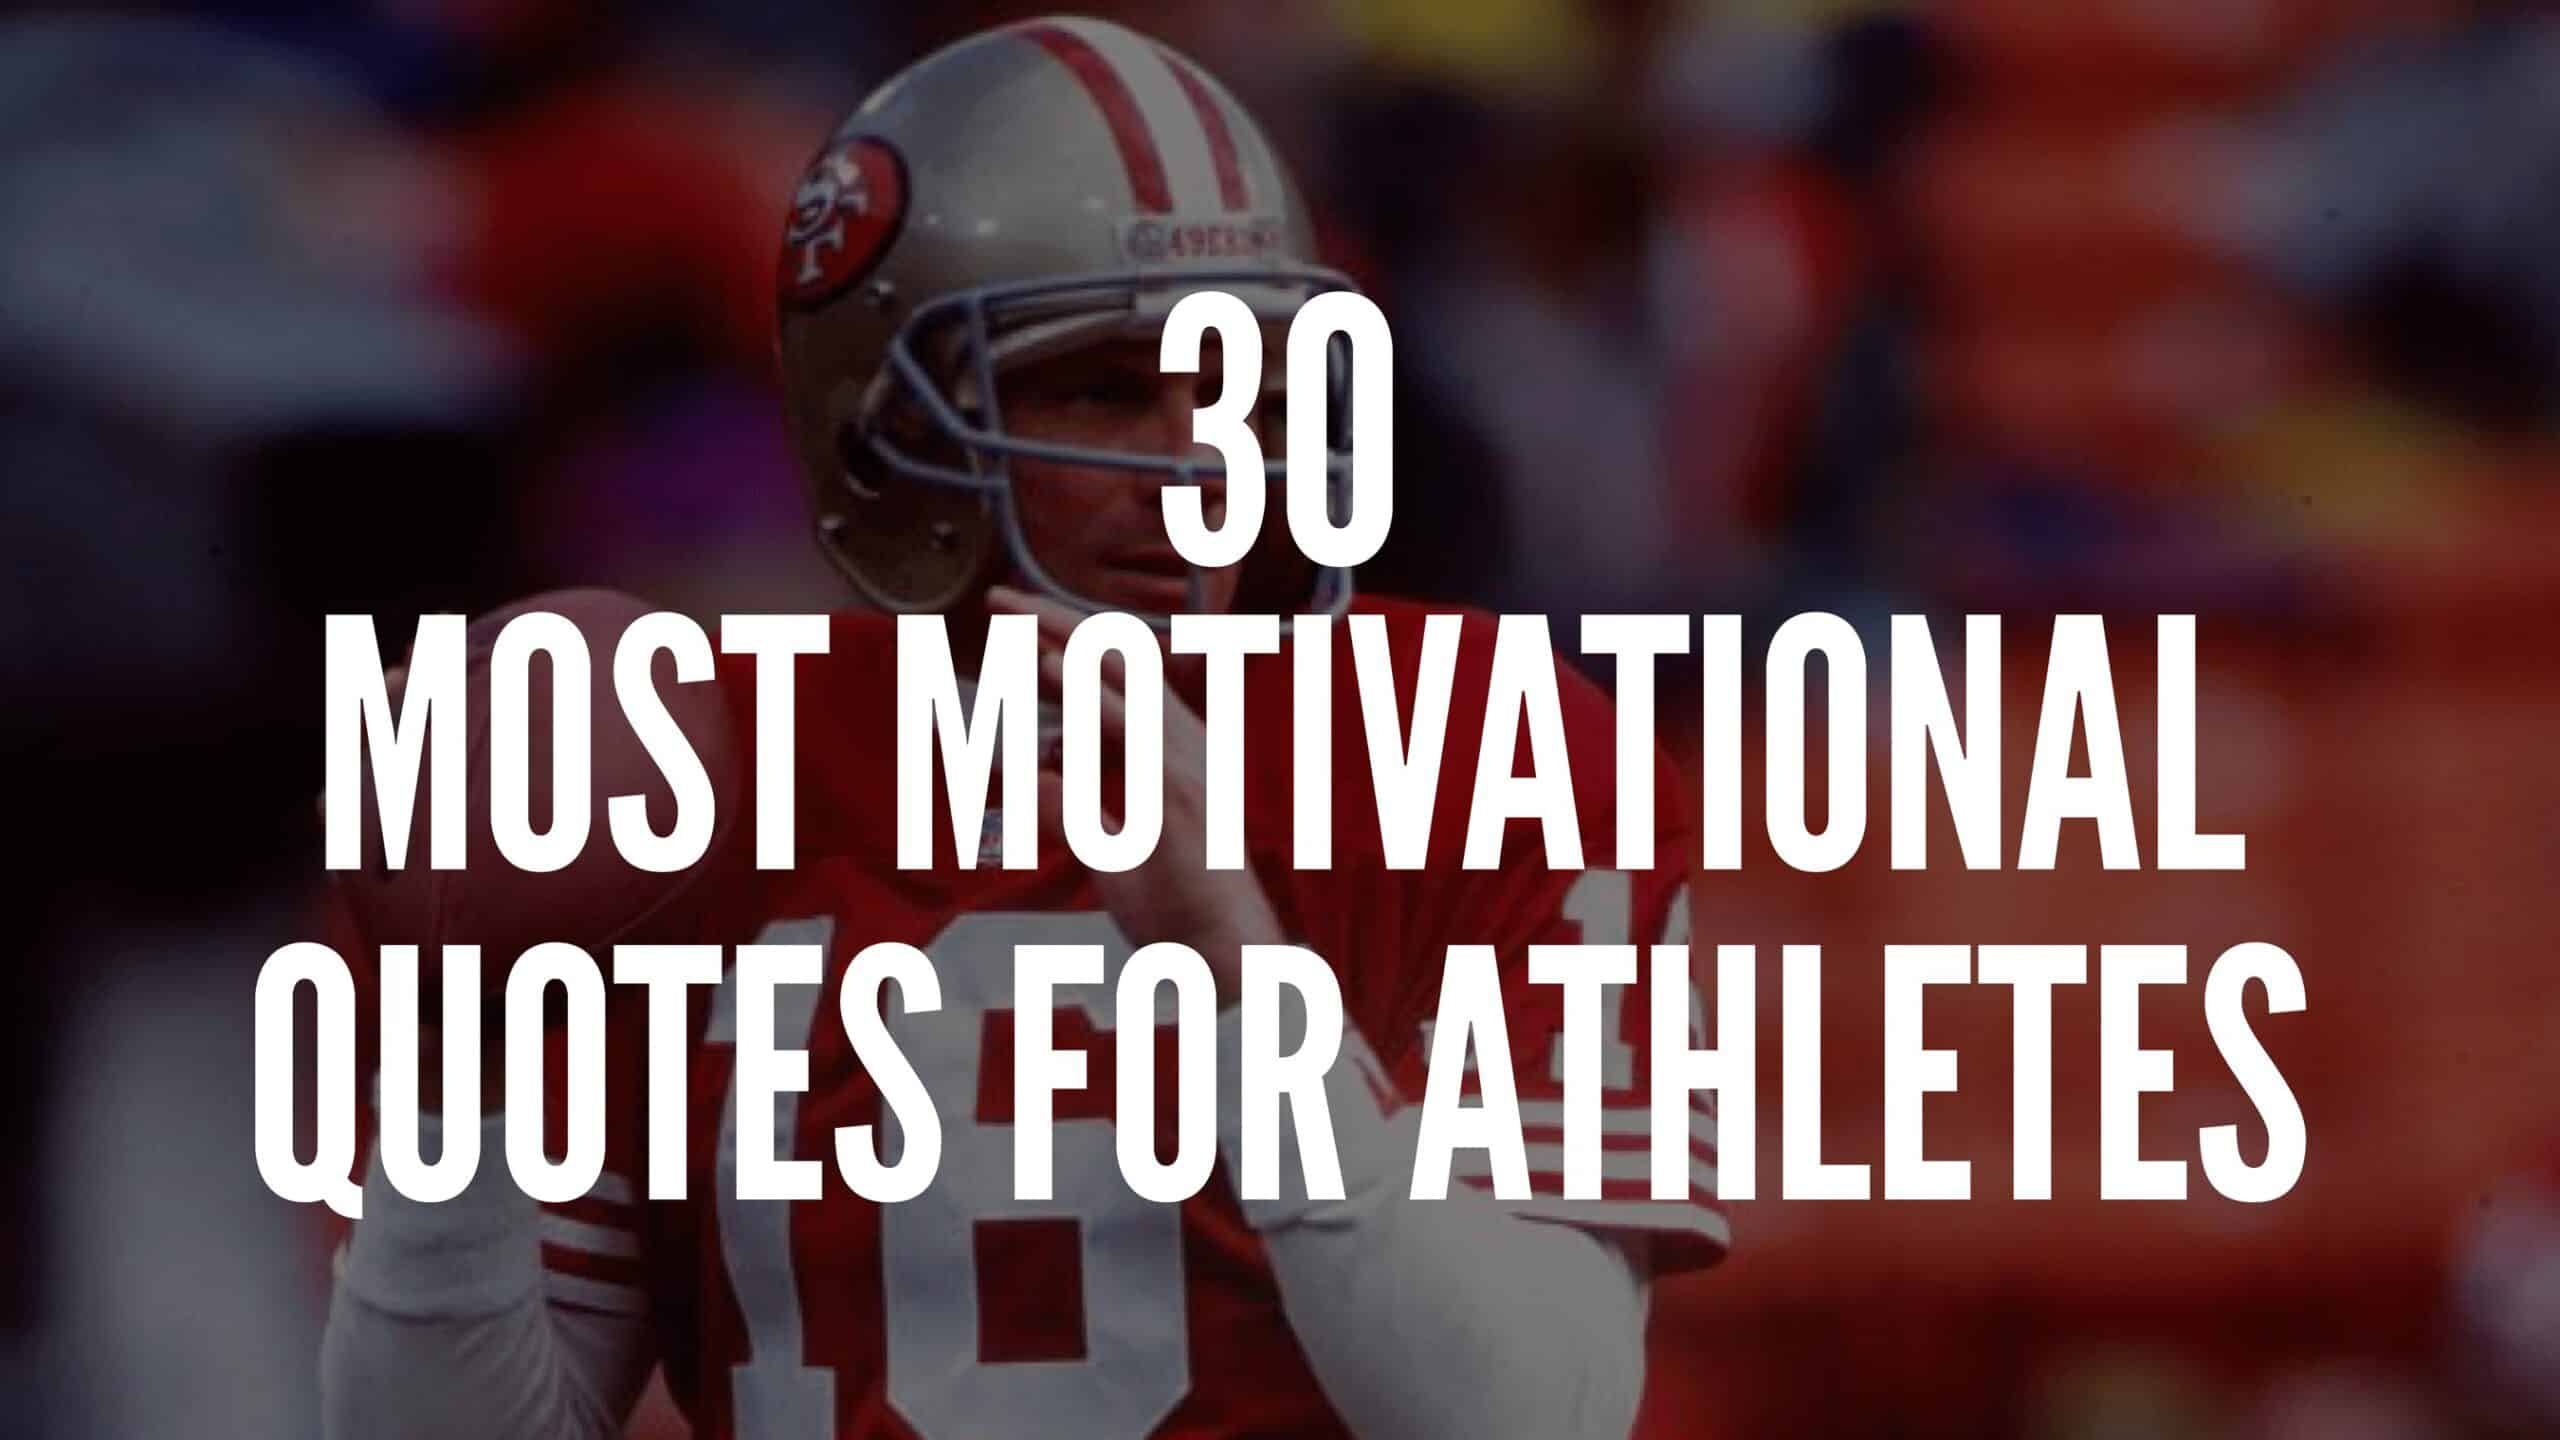 30 Most Motivational Quotes For Athletes